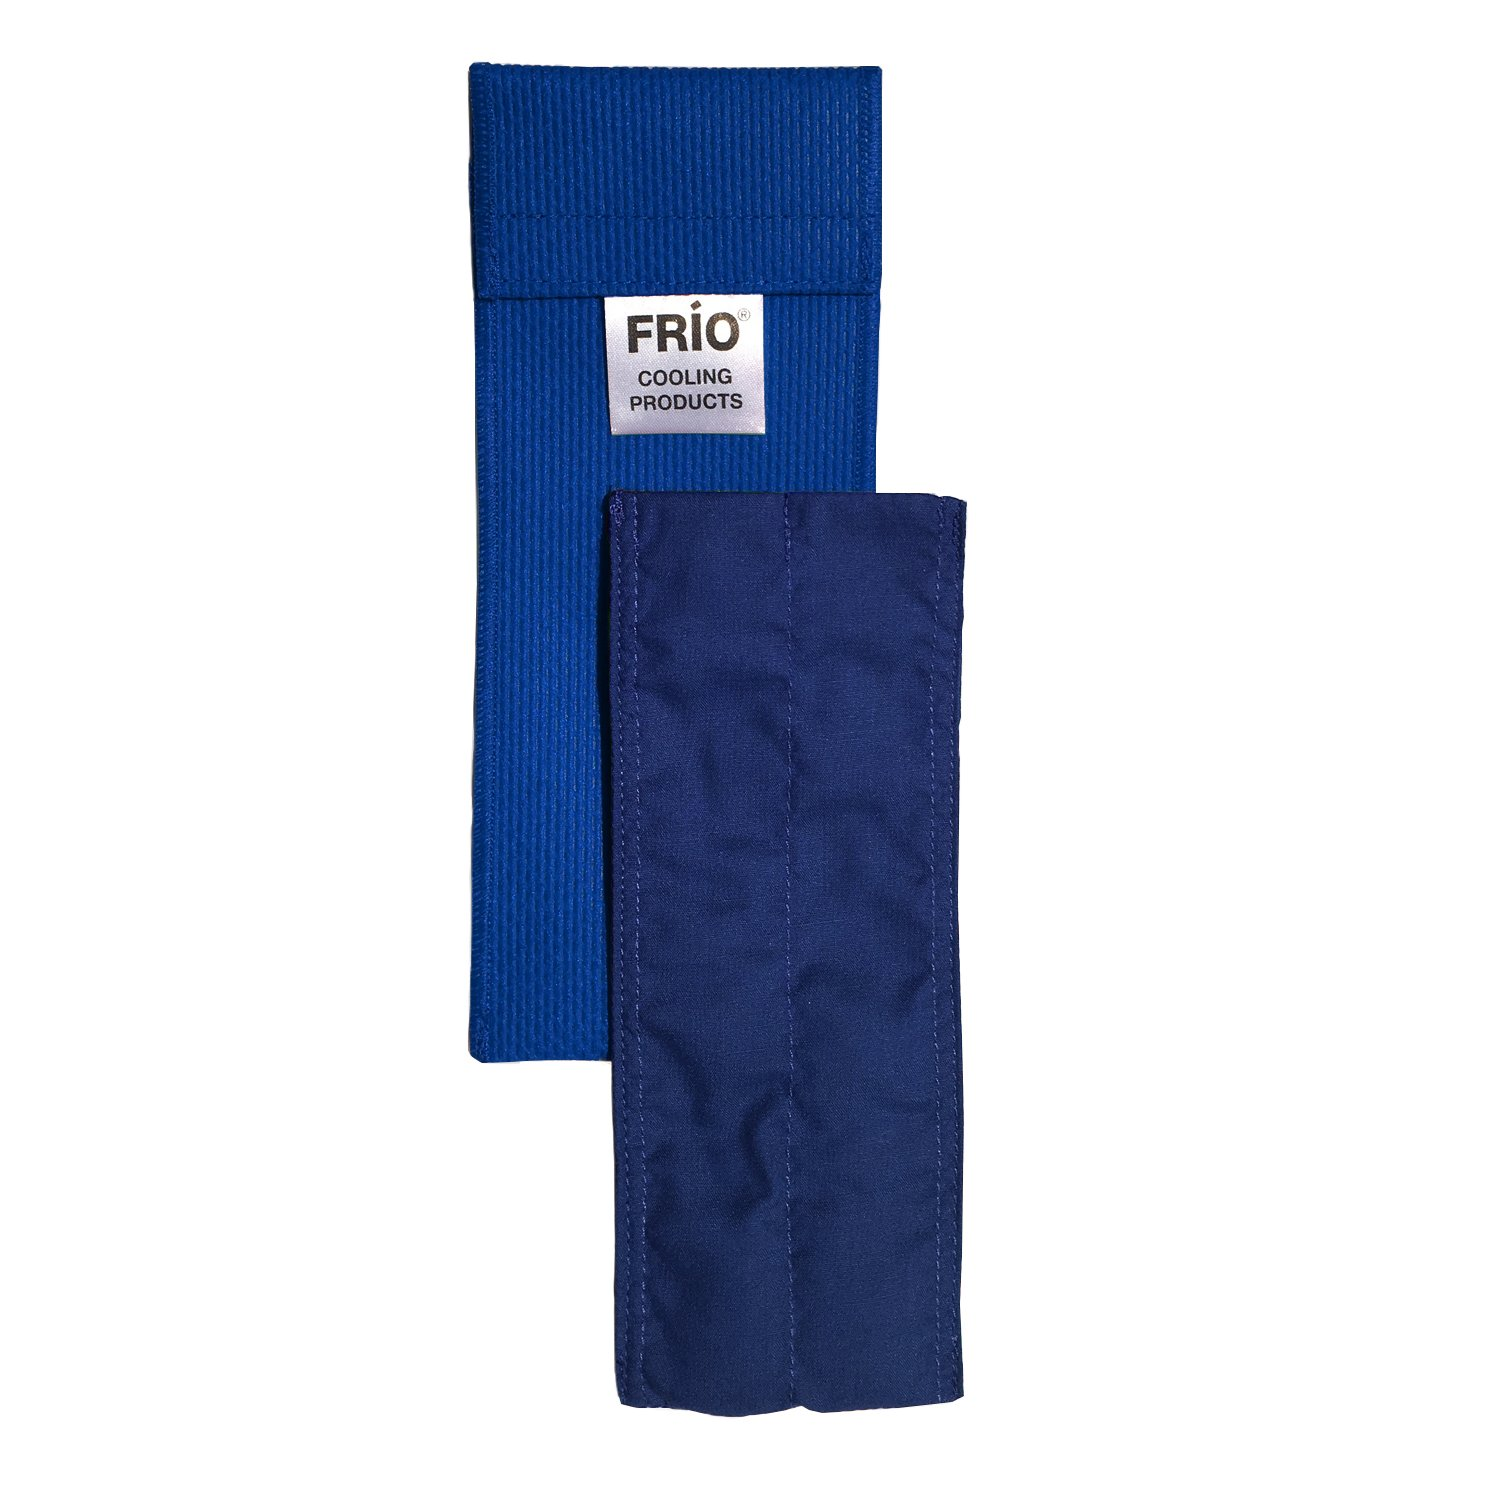 Frio Insulin Cooling Case Single Wallet, Blue